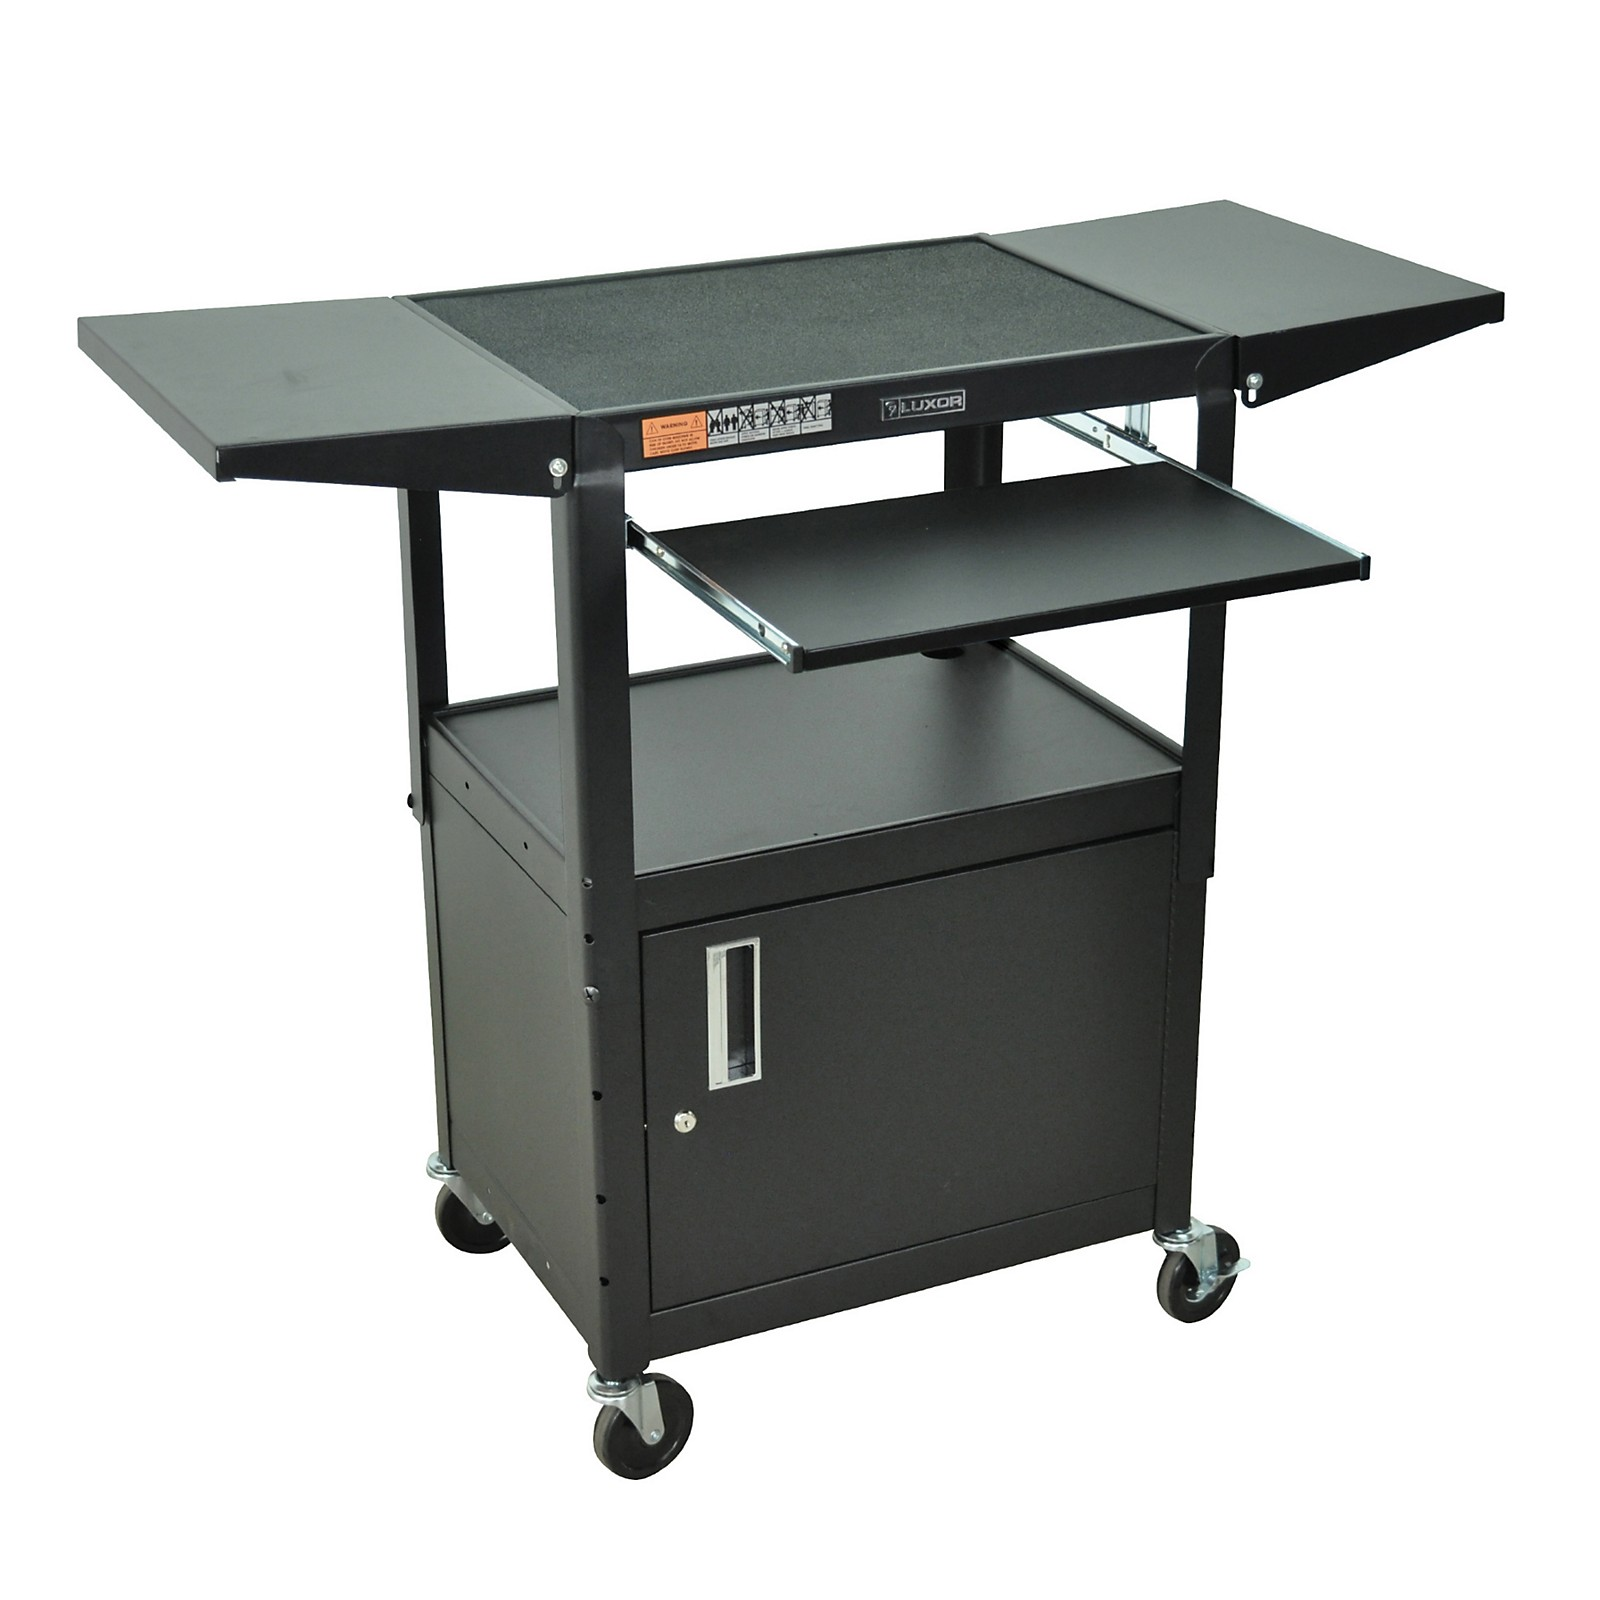 H. Wilson Adjustable Height Cart with Keyboard Tray, Locking Cabinet and Drop Leaf Shelves